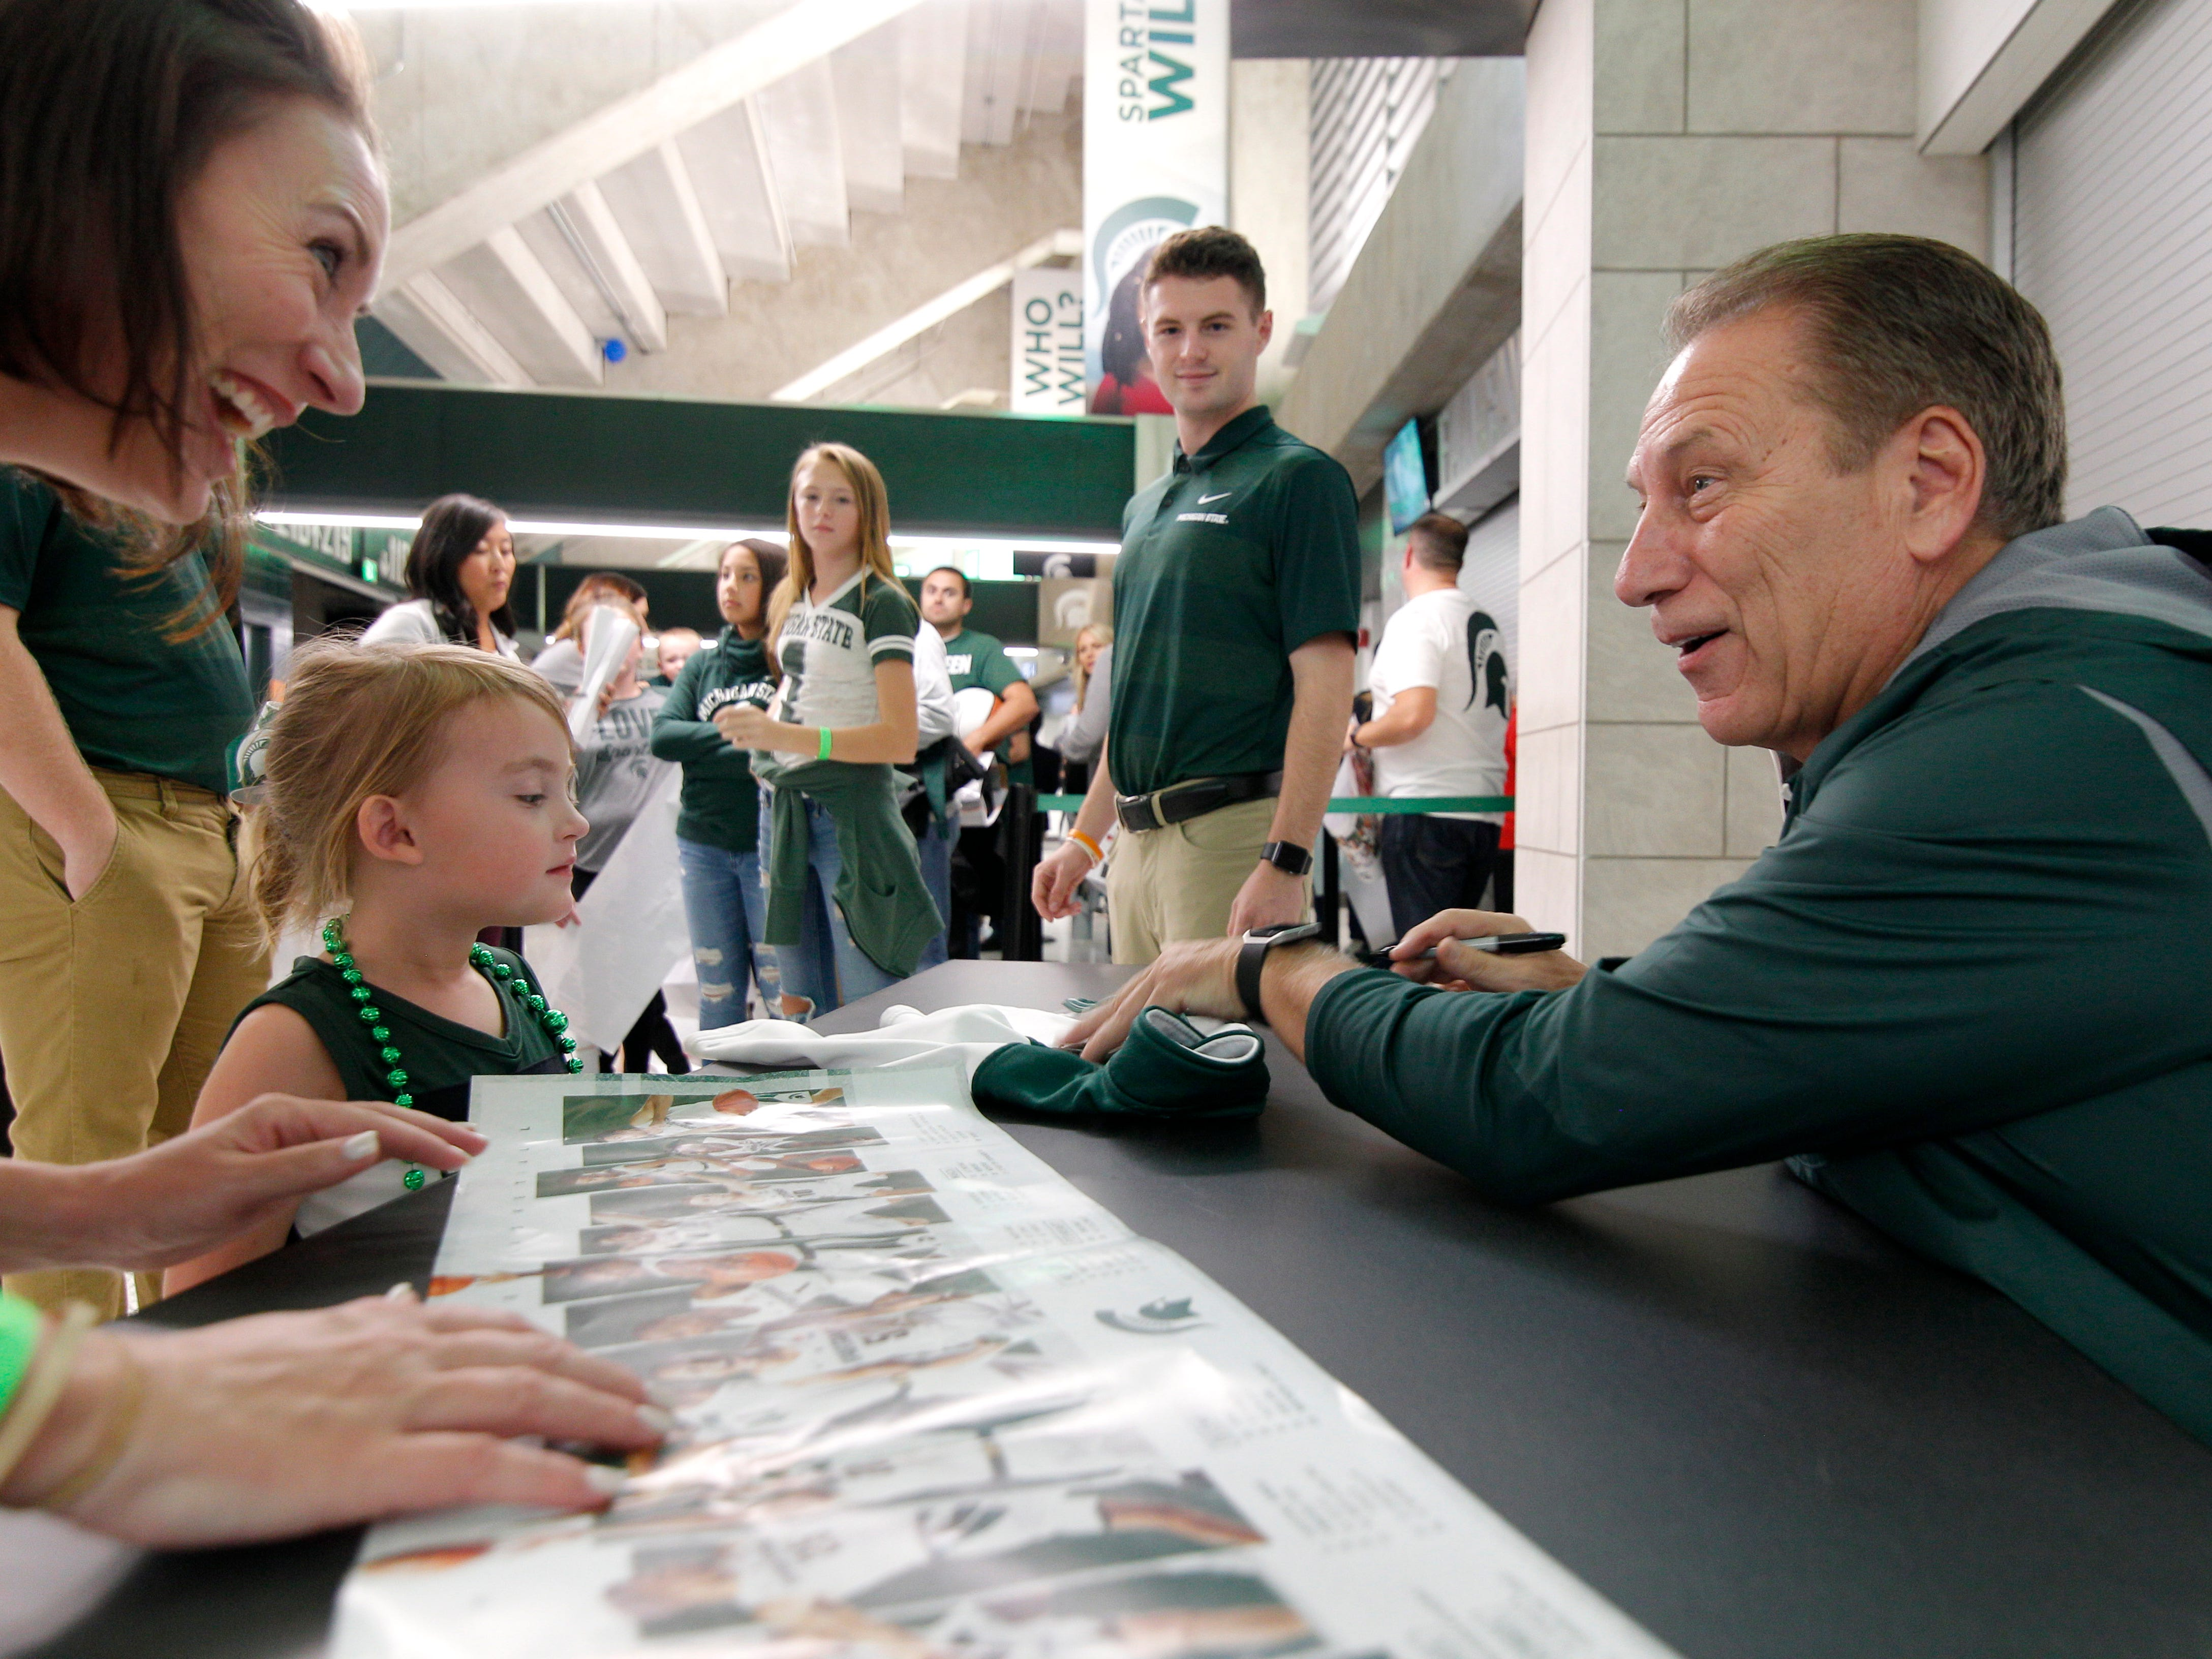 Michigan State men's basketball coach Tom Izzo, right, signs an autograph for Jamie Collins and her daughter Charlotte Collins, 4 at MSU Madness, Friday, Oct. 5, 2018, in East Lansing, Mich.